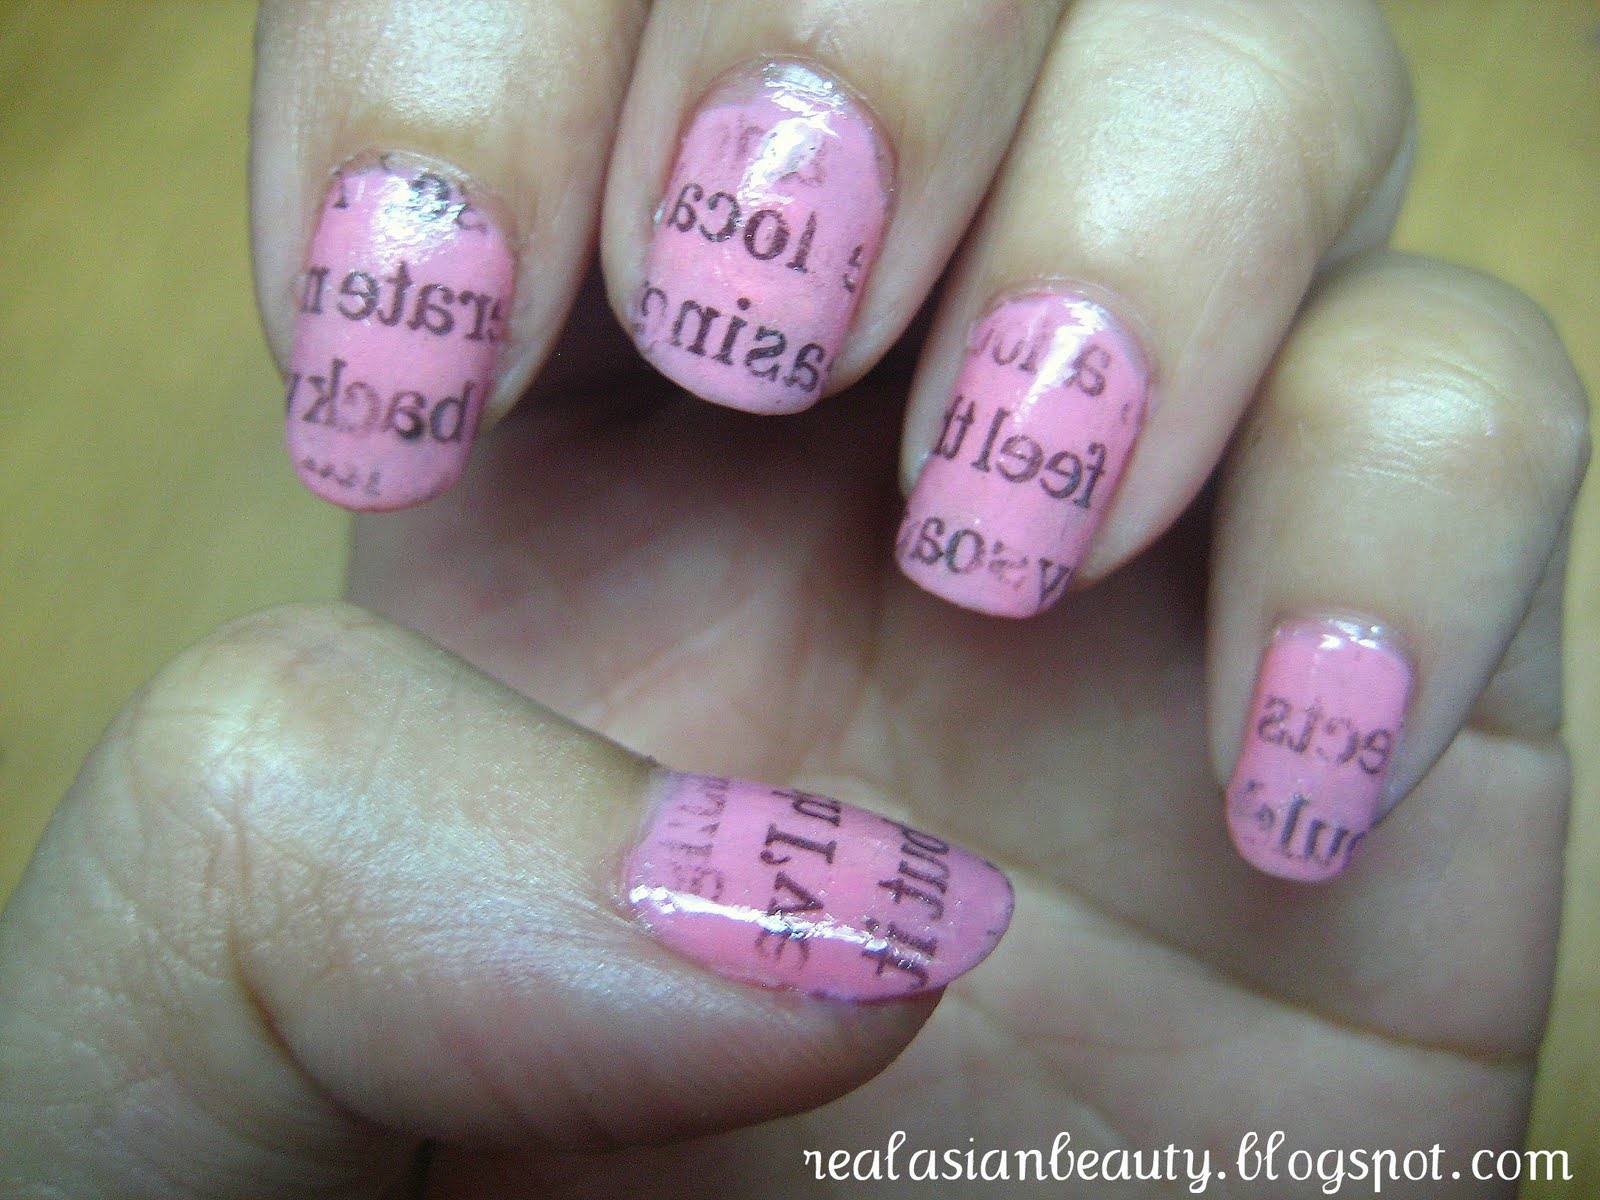 Real Asian Beauty: Newspaper Nail Art